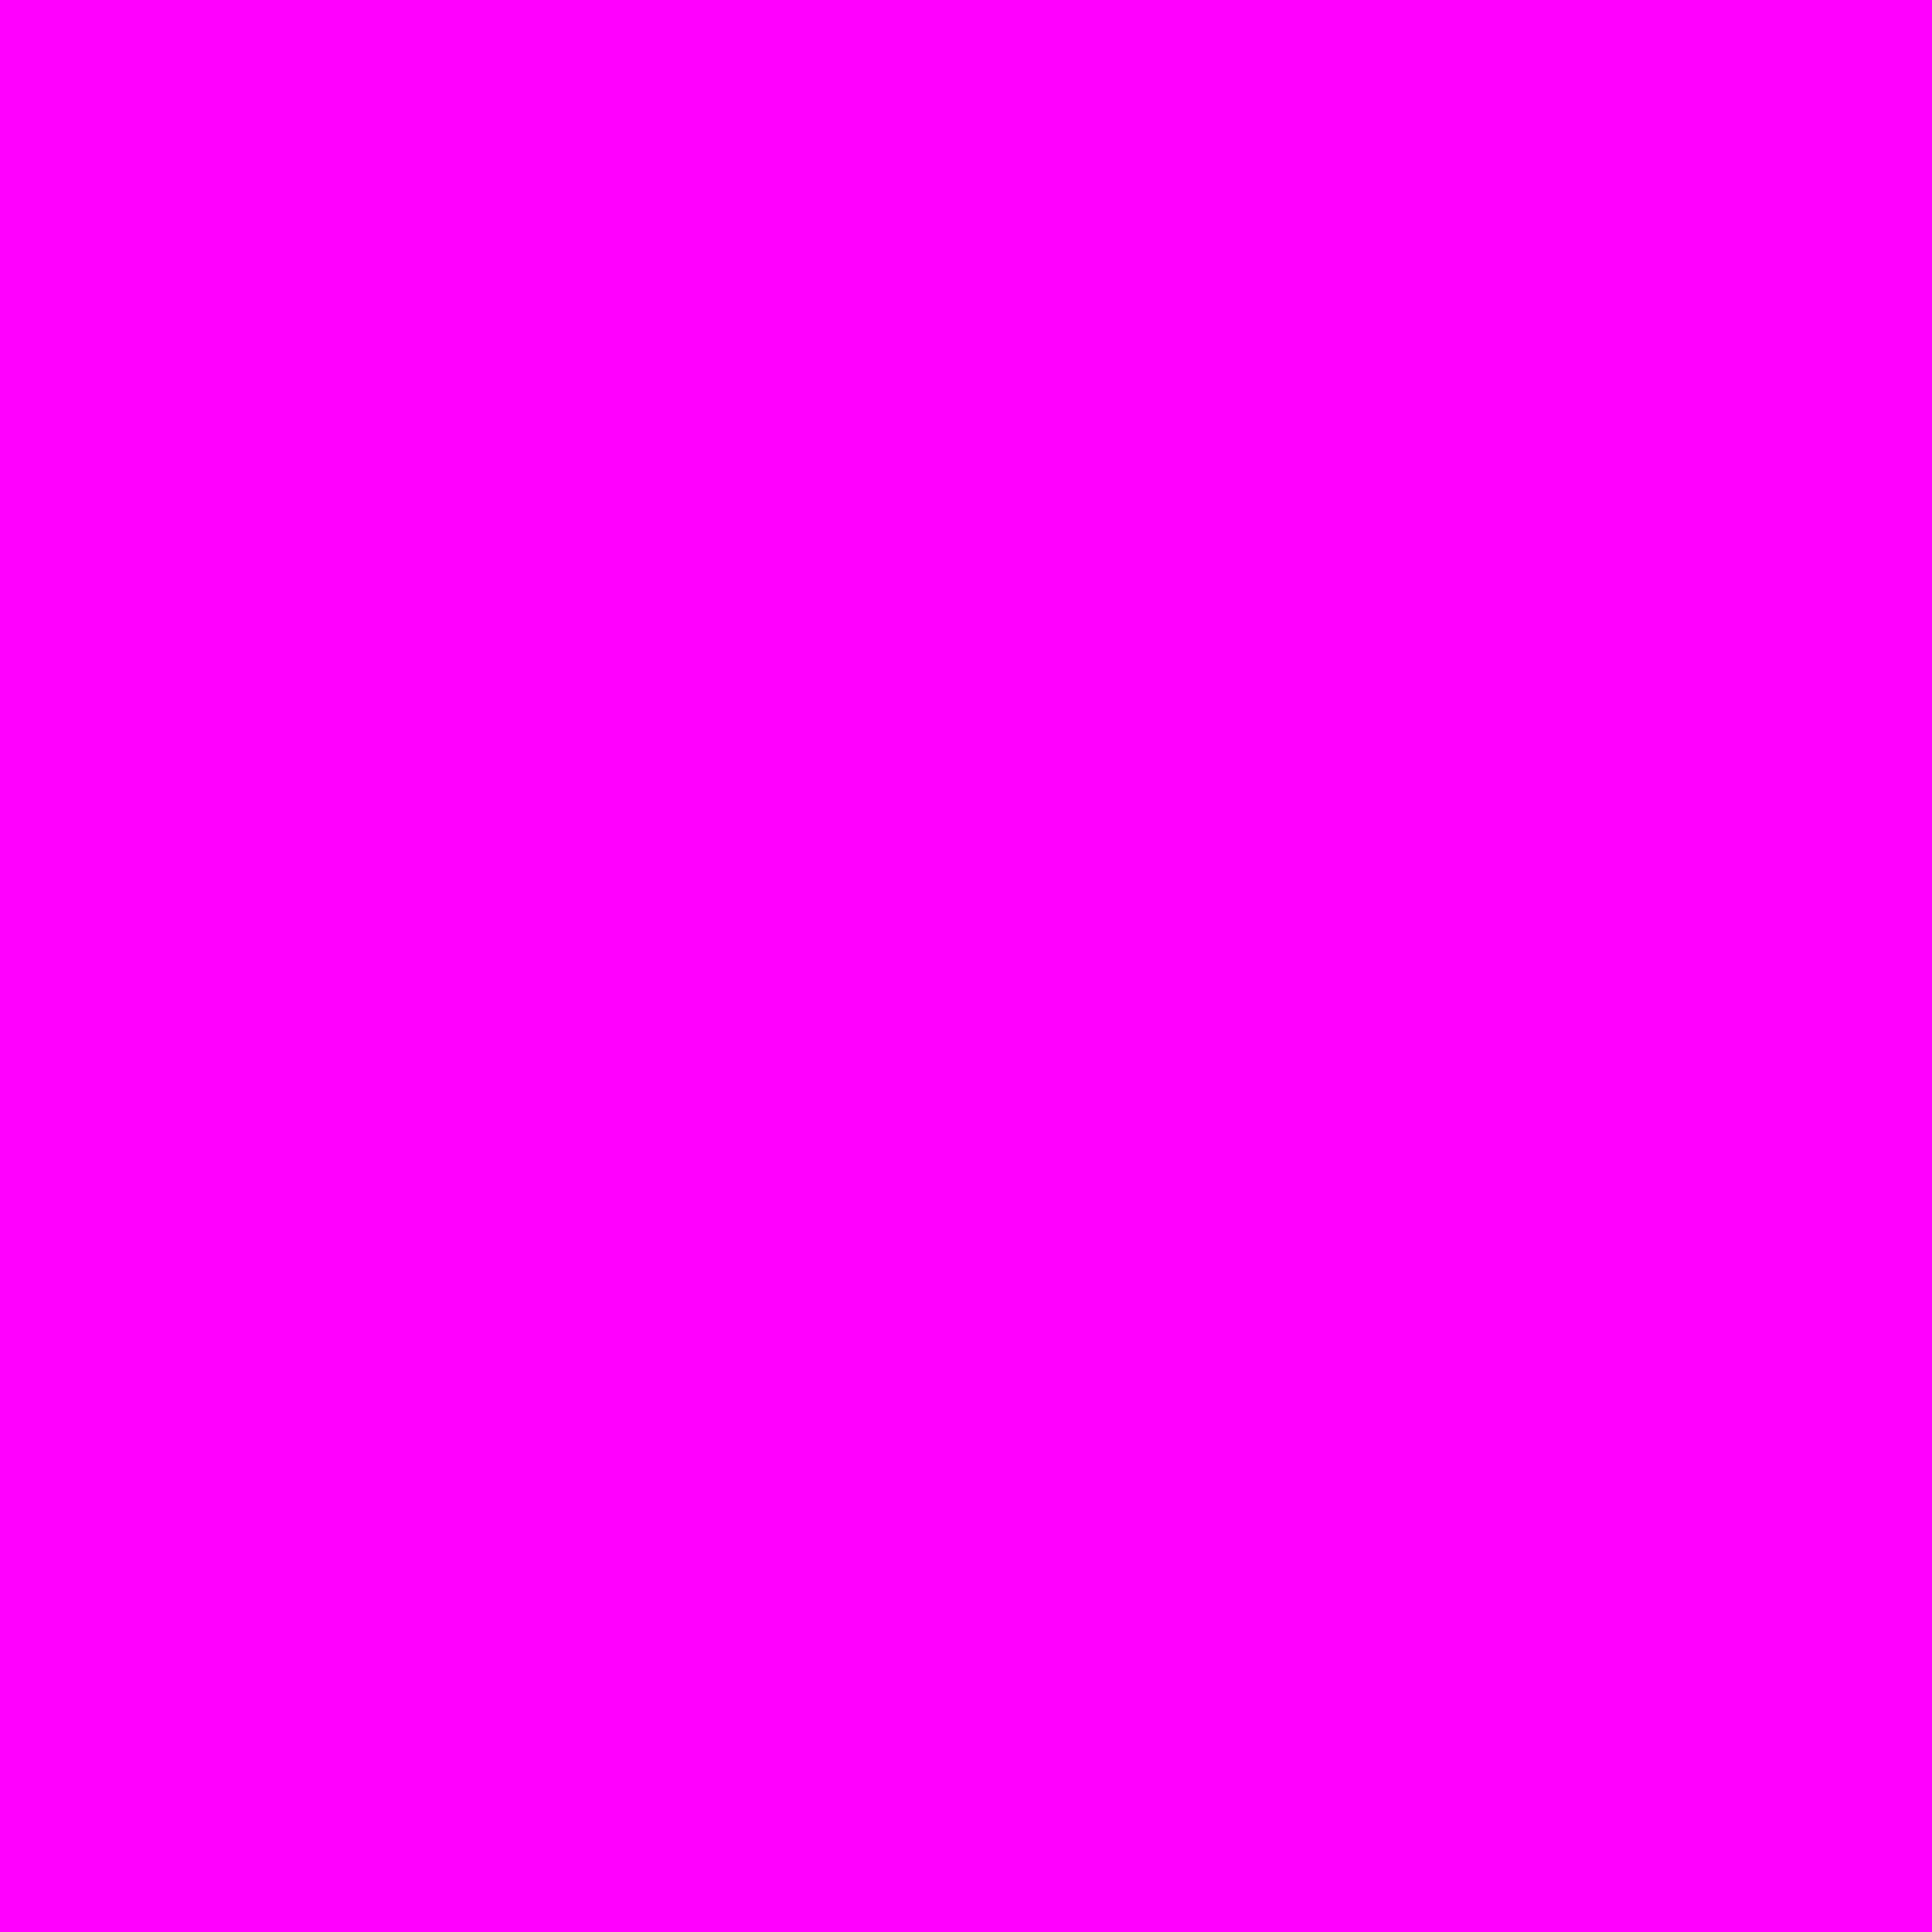 2732x2732 Fuchsia Solid Color Background